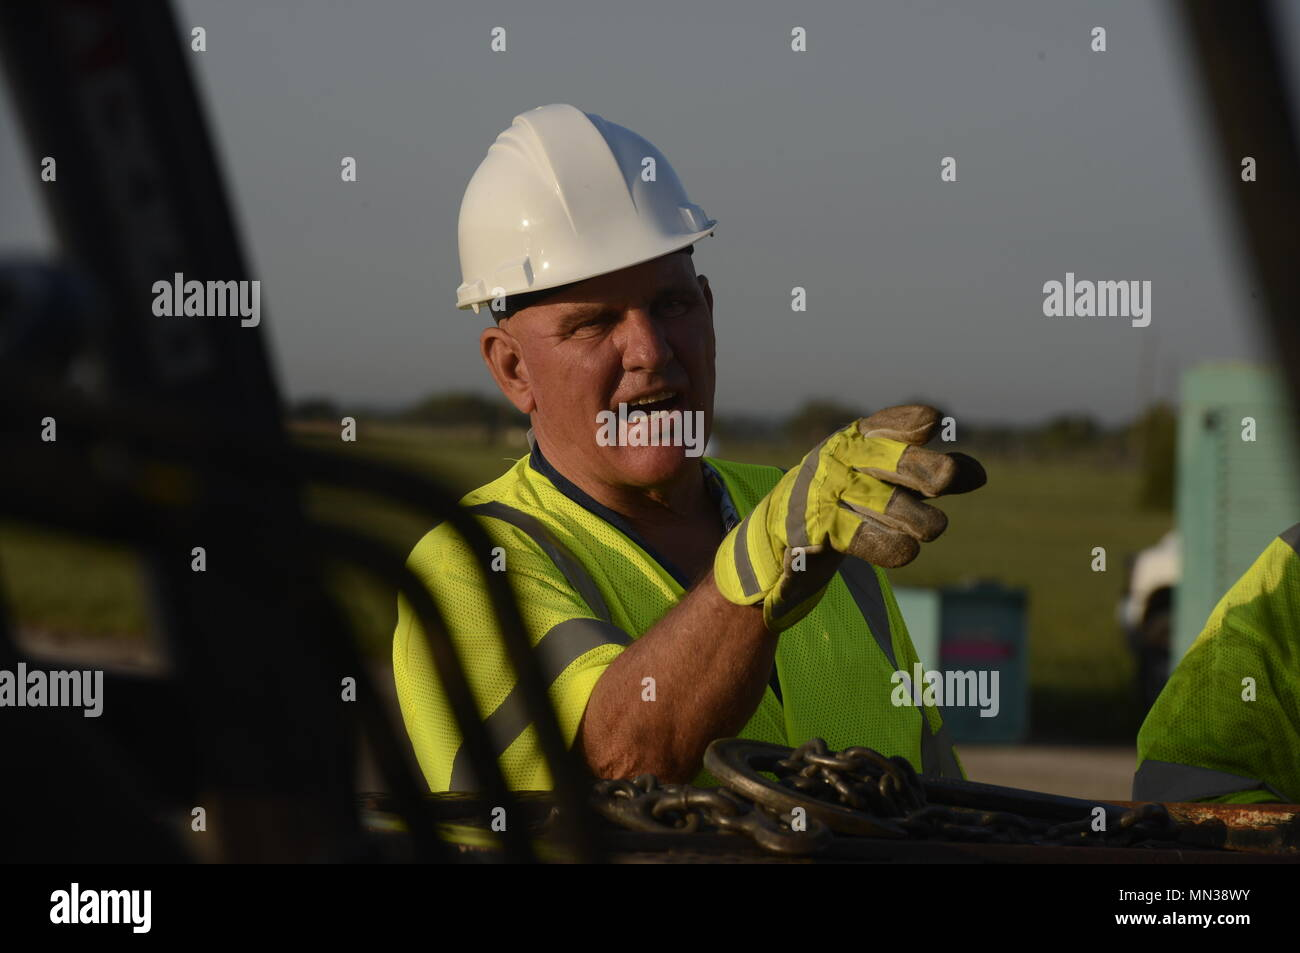 Jake Jecmenek, contractor, directs a forklift operator to position a Federal Emergency Management Agency generator on a rollback truck that will be used to support Hurricane Harvey relief efforts, at JBSA Randolph auxiliary airfield, Seguin, Texas, August 31, 2017. The category-4 hurricane, with wind speeds of 130 mph, made landfall August 25, 2017.  Days after the hurricane reached Texas, more than 50 inches of rain flooded the coastal region. (U.S. Air Force Photo by Tech. Sgt. Chad Chisholm/Released) Stock Photo